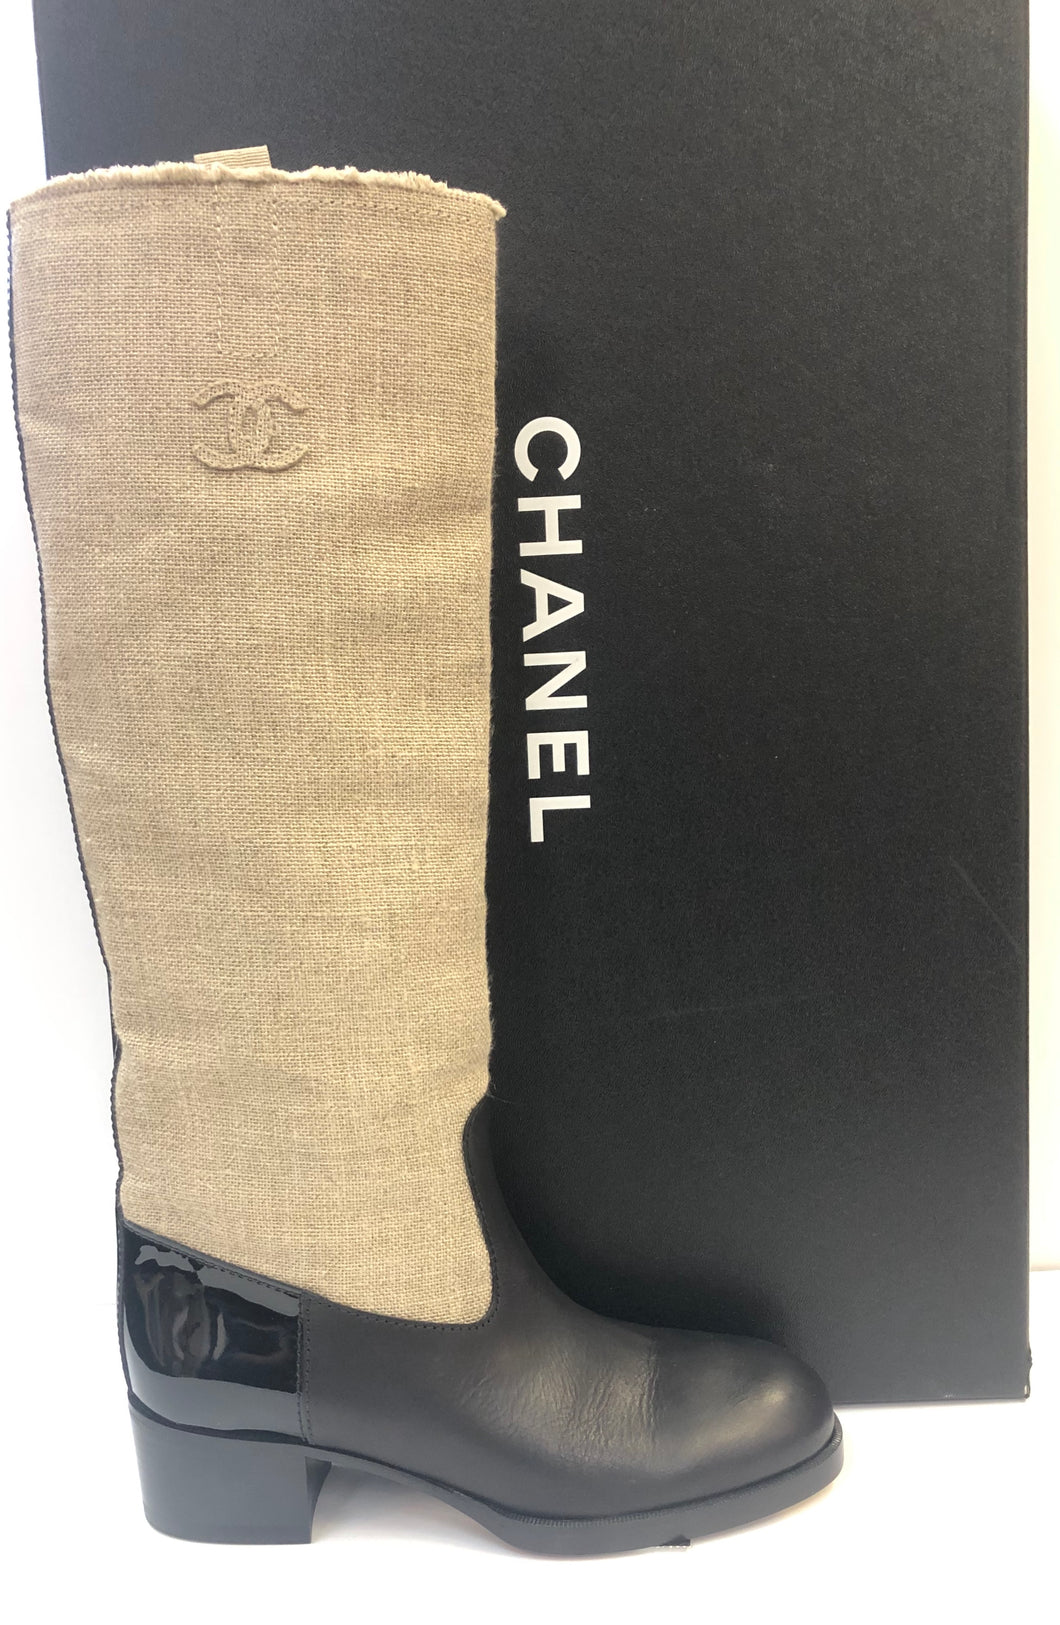 CHANEL Canvas & Leather Riding Boots 18C